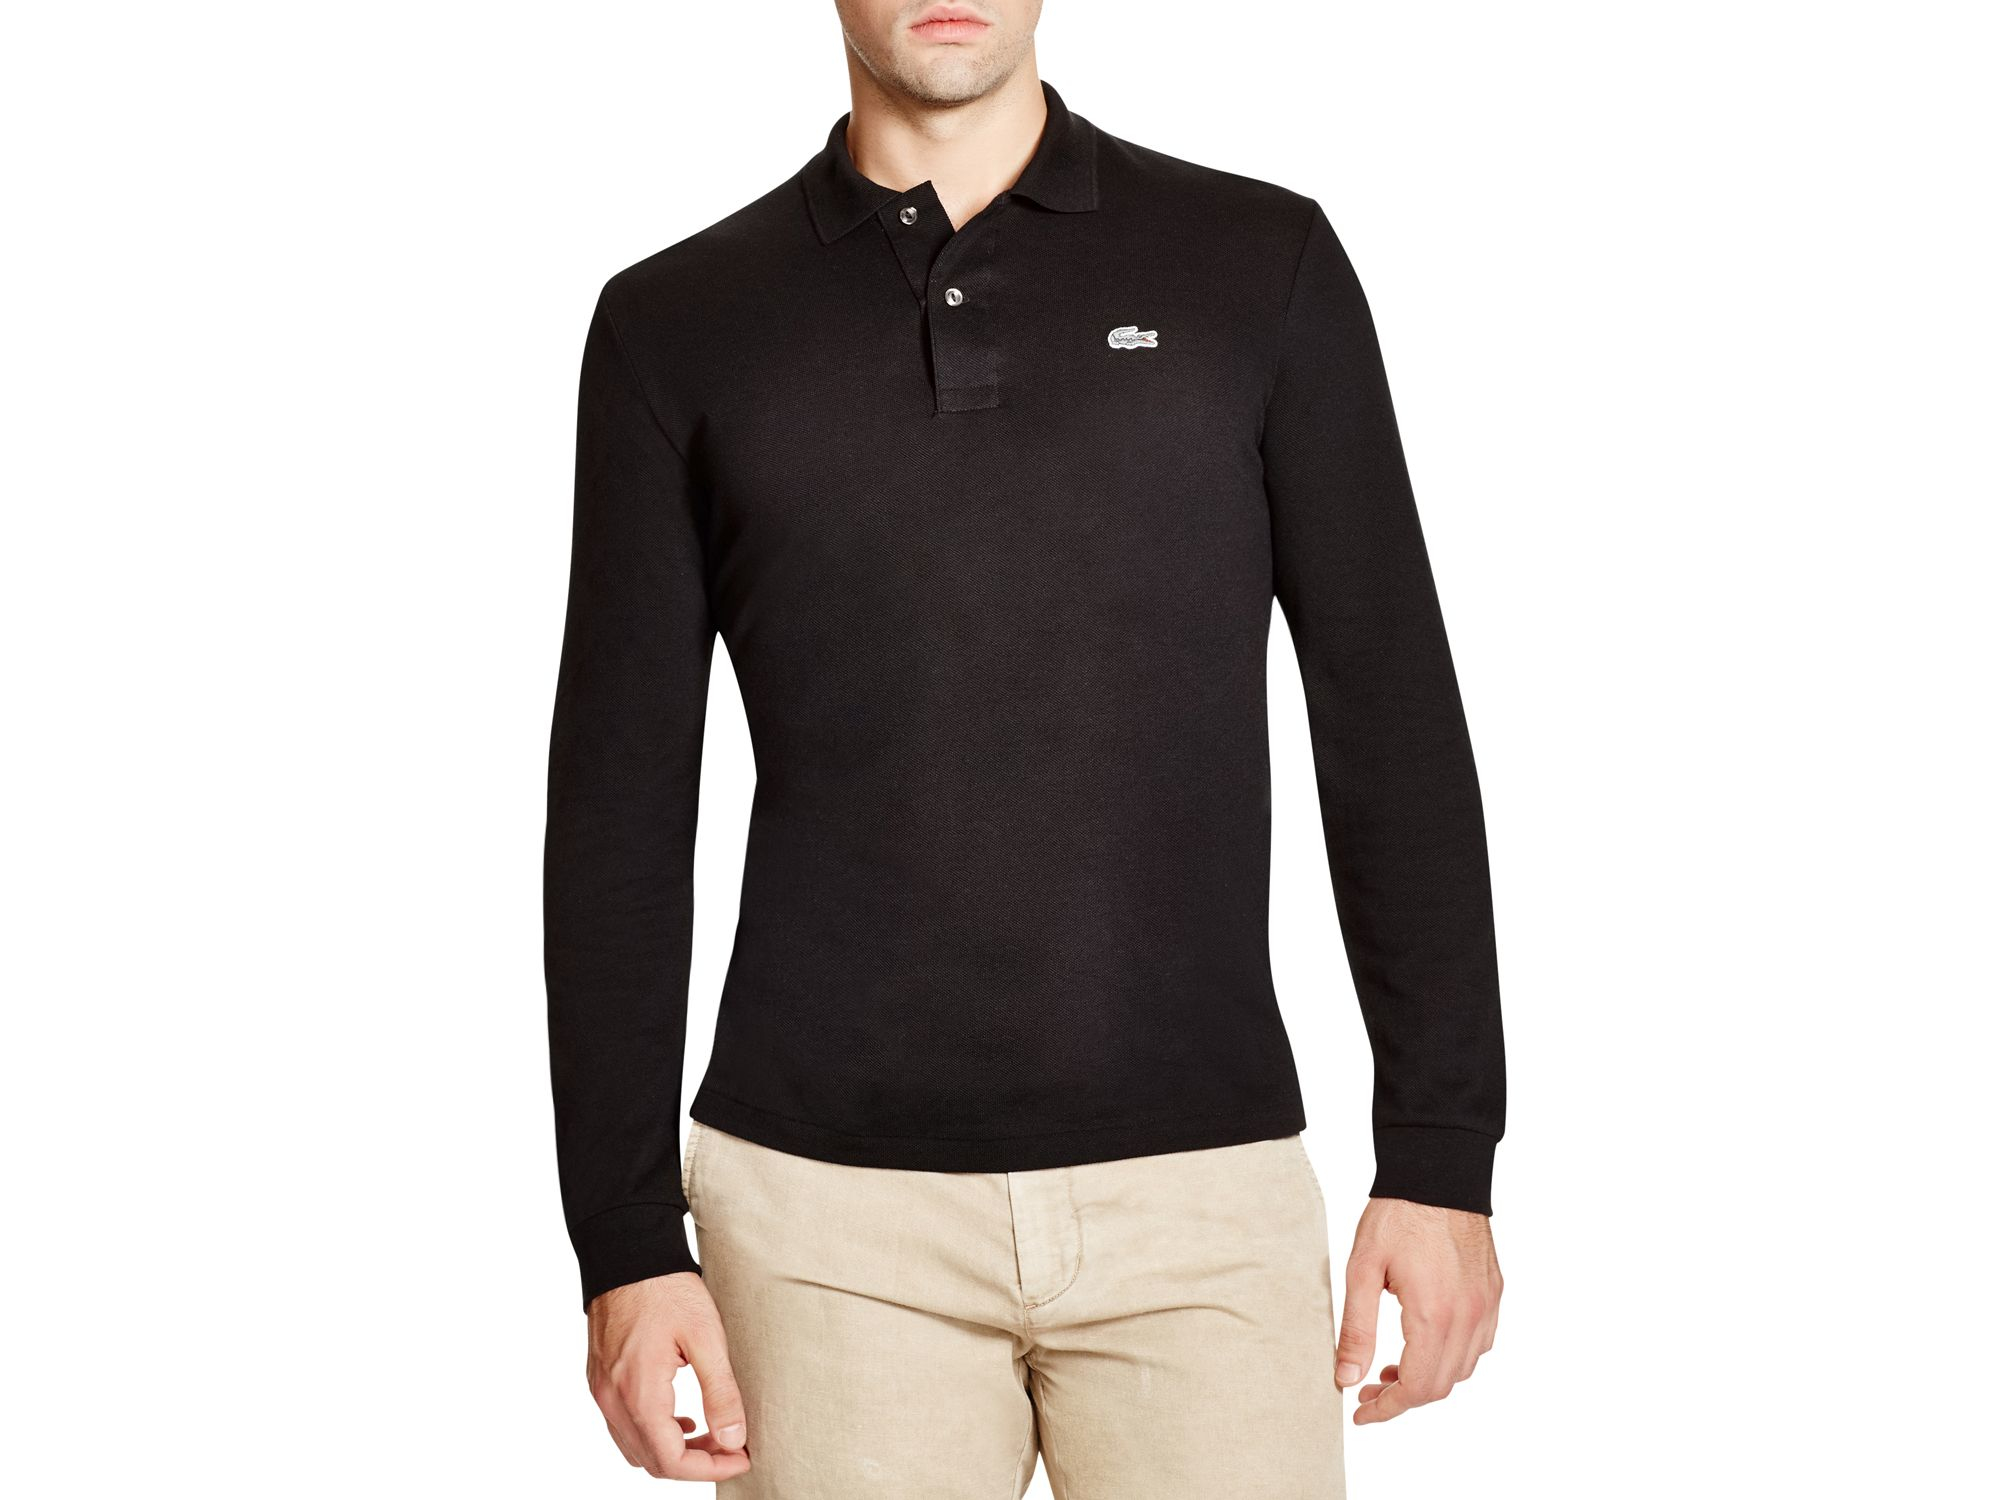 a9dc705b2fbc1 Lacoste Croc Stretch Long Sleeve Slim Fit Polo in Black for Men - Lyst